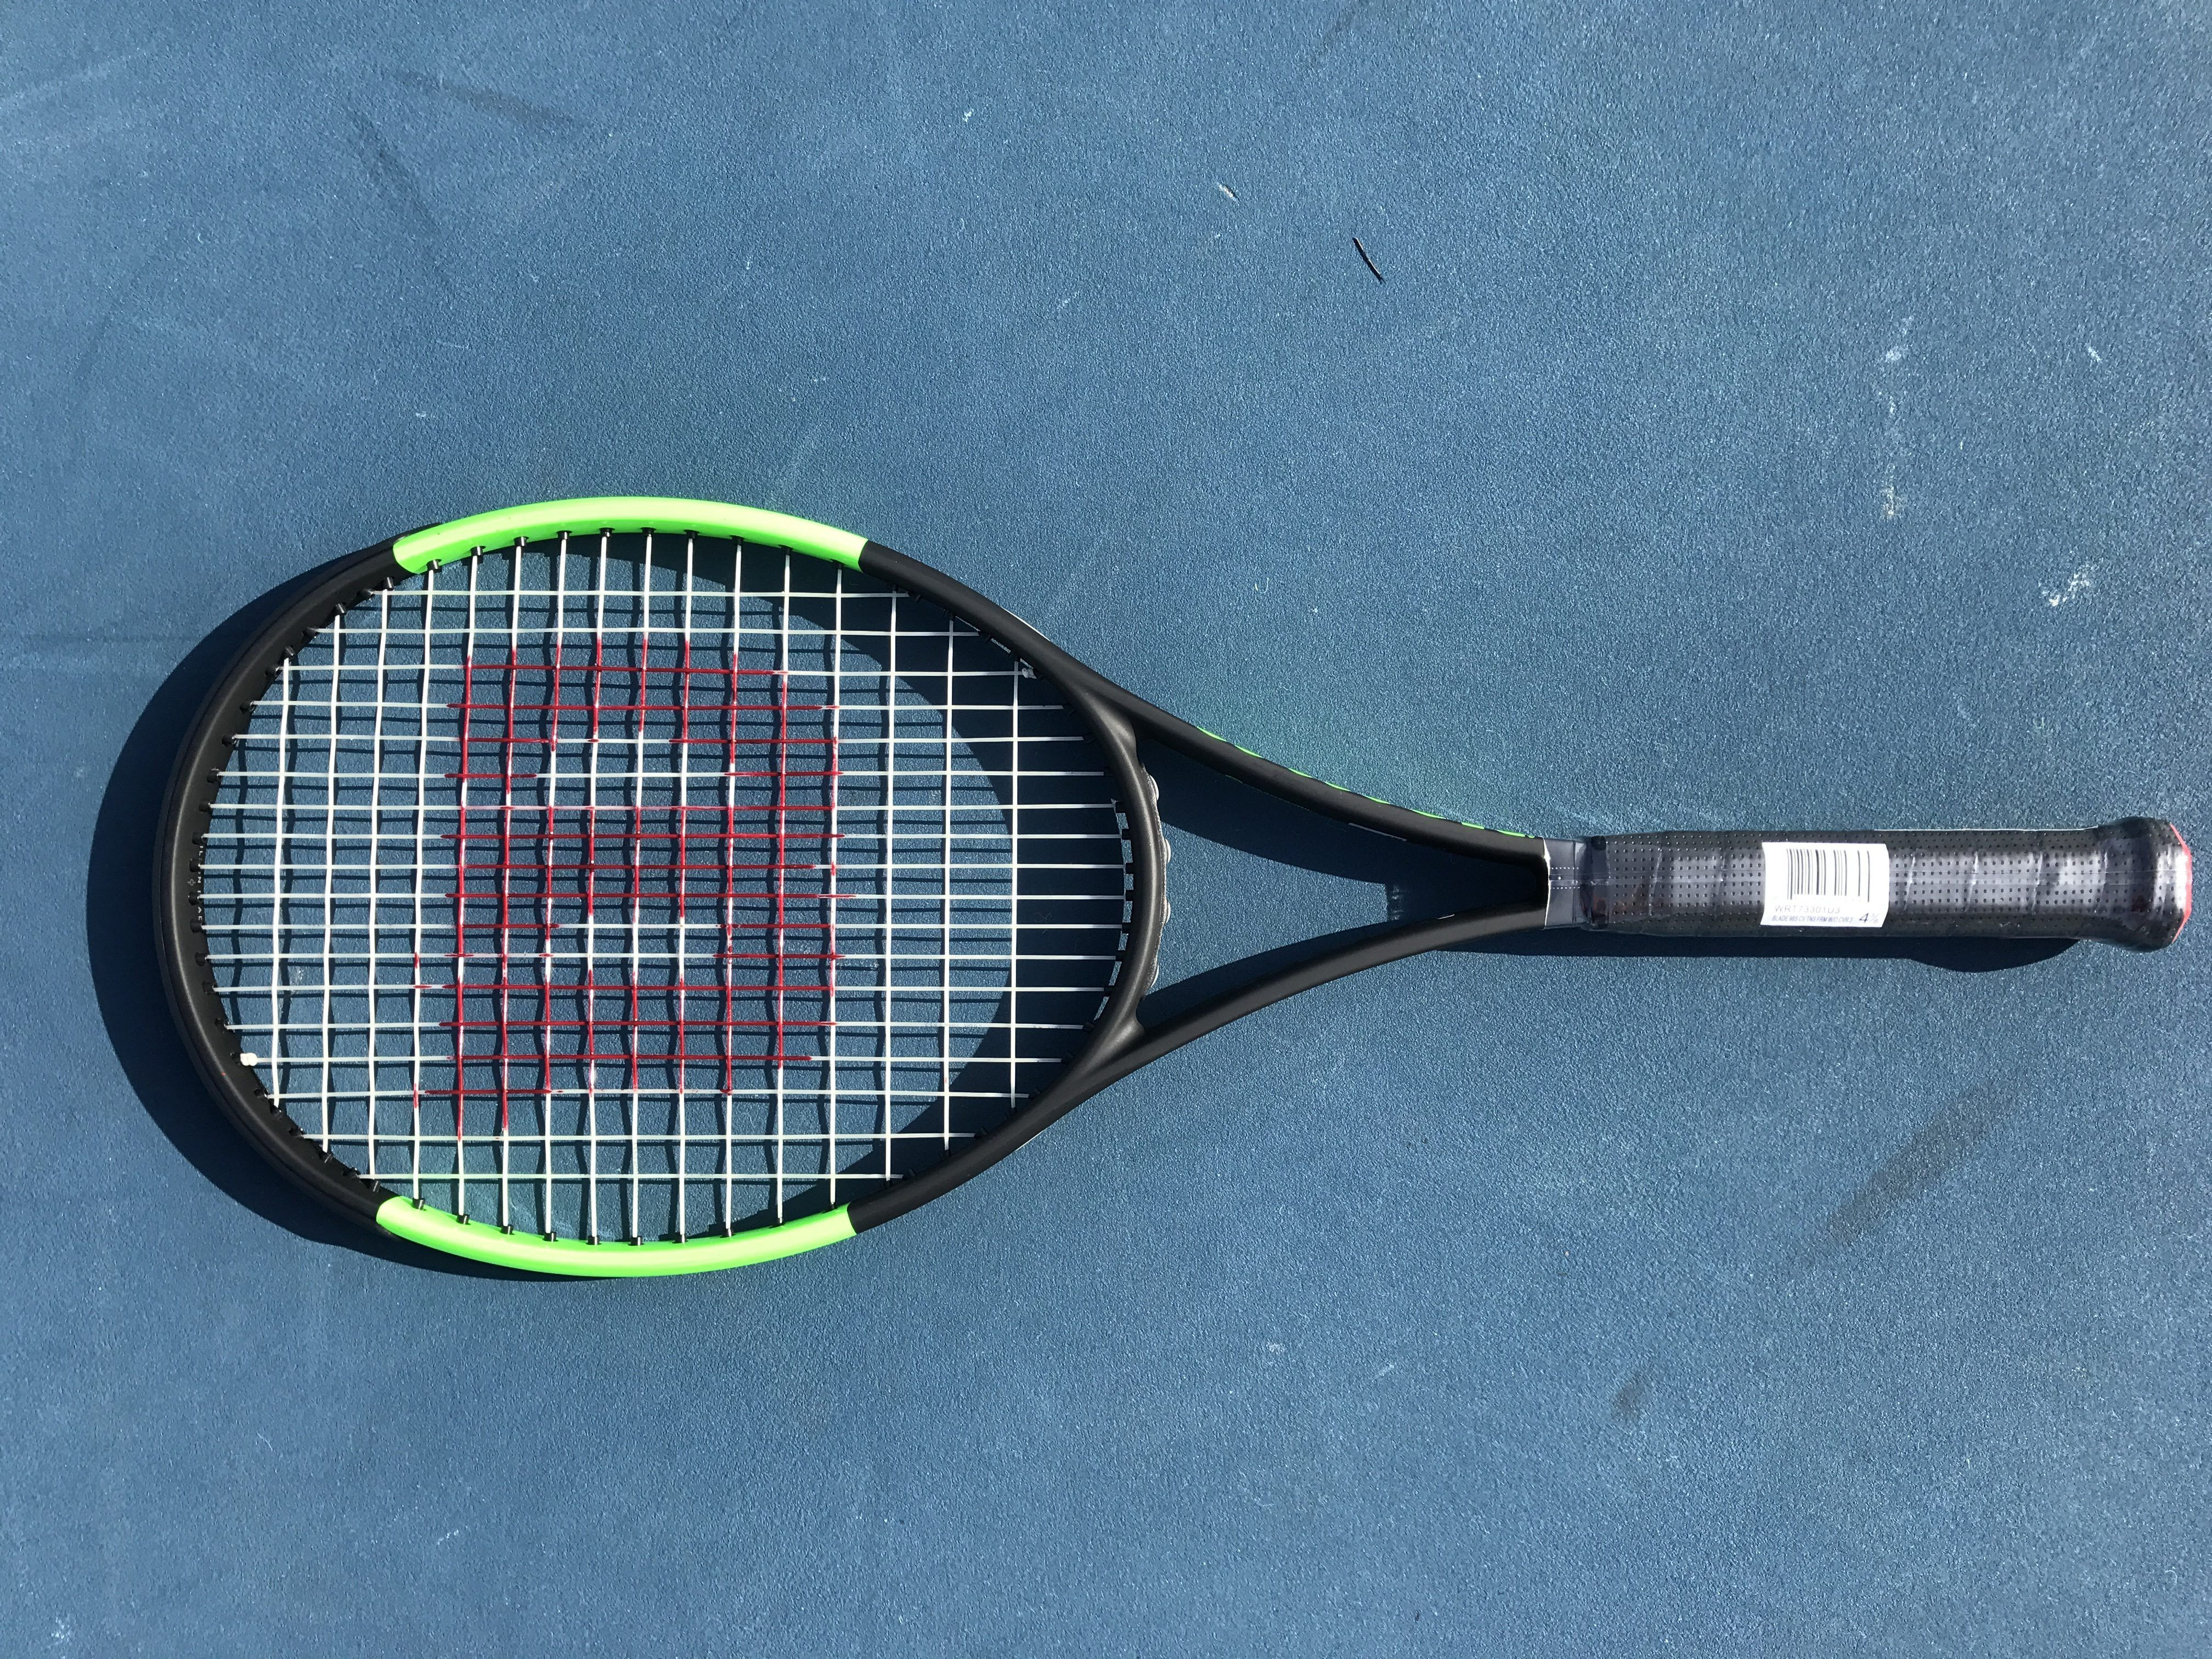 Reviews For The Best Tennis Racquets Tennis Racket Pro Tennis Racquet Racquets Tennis